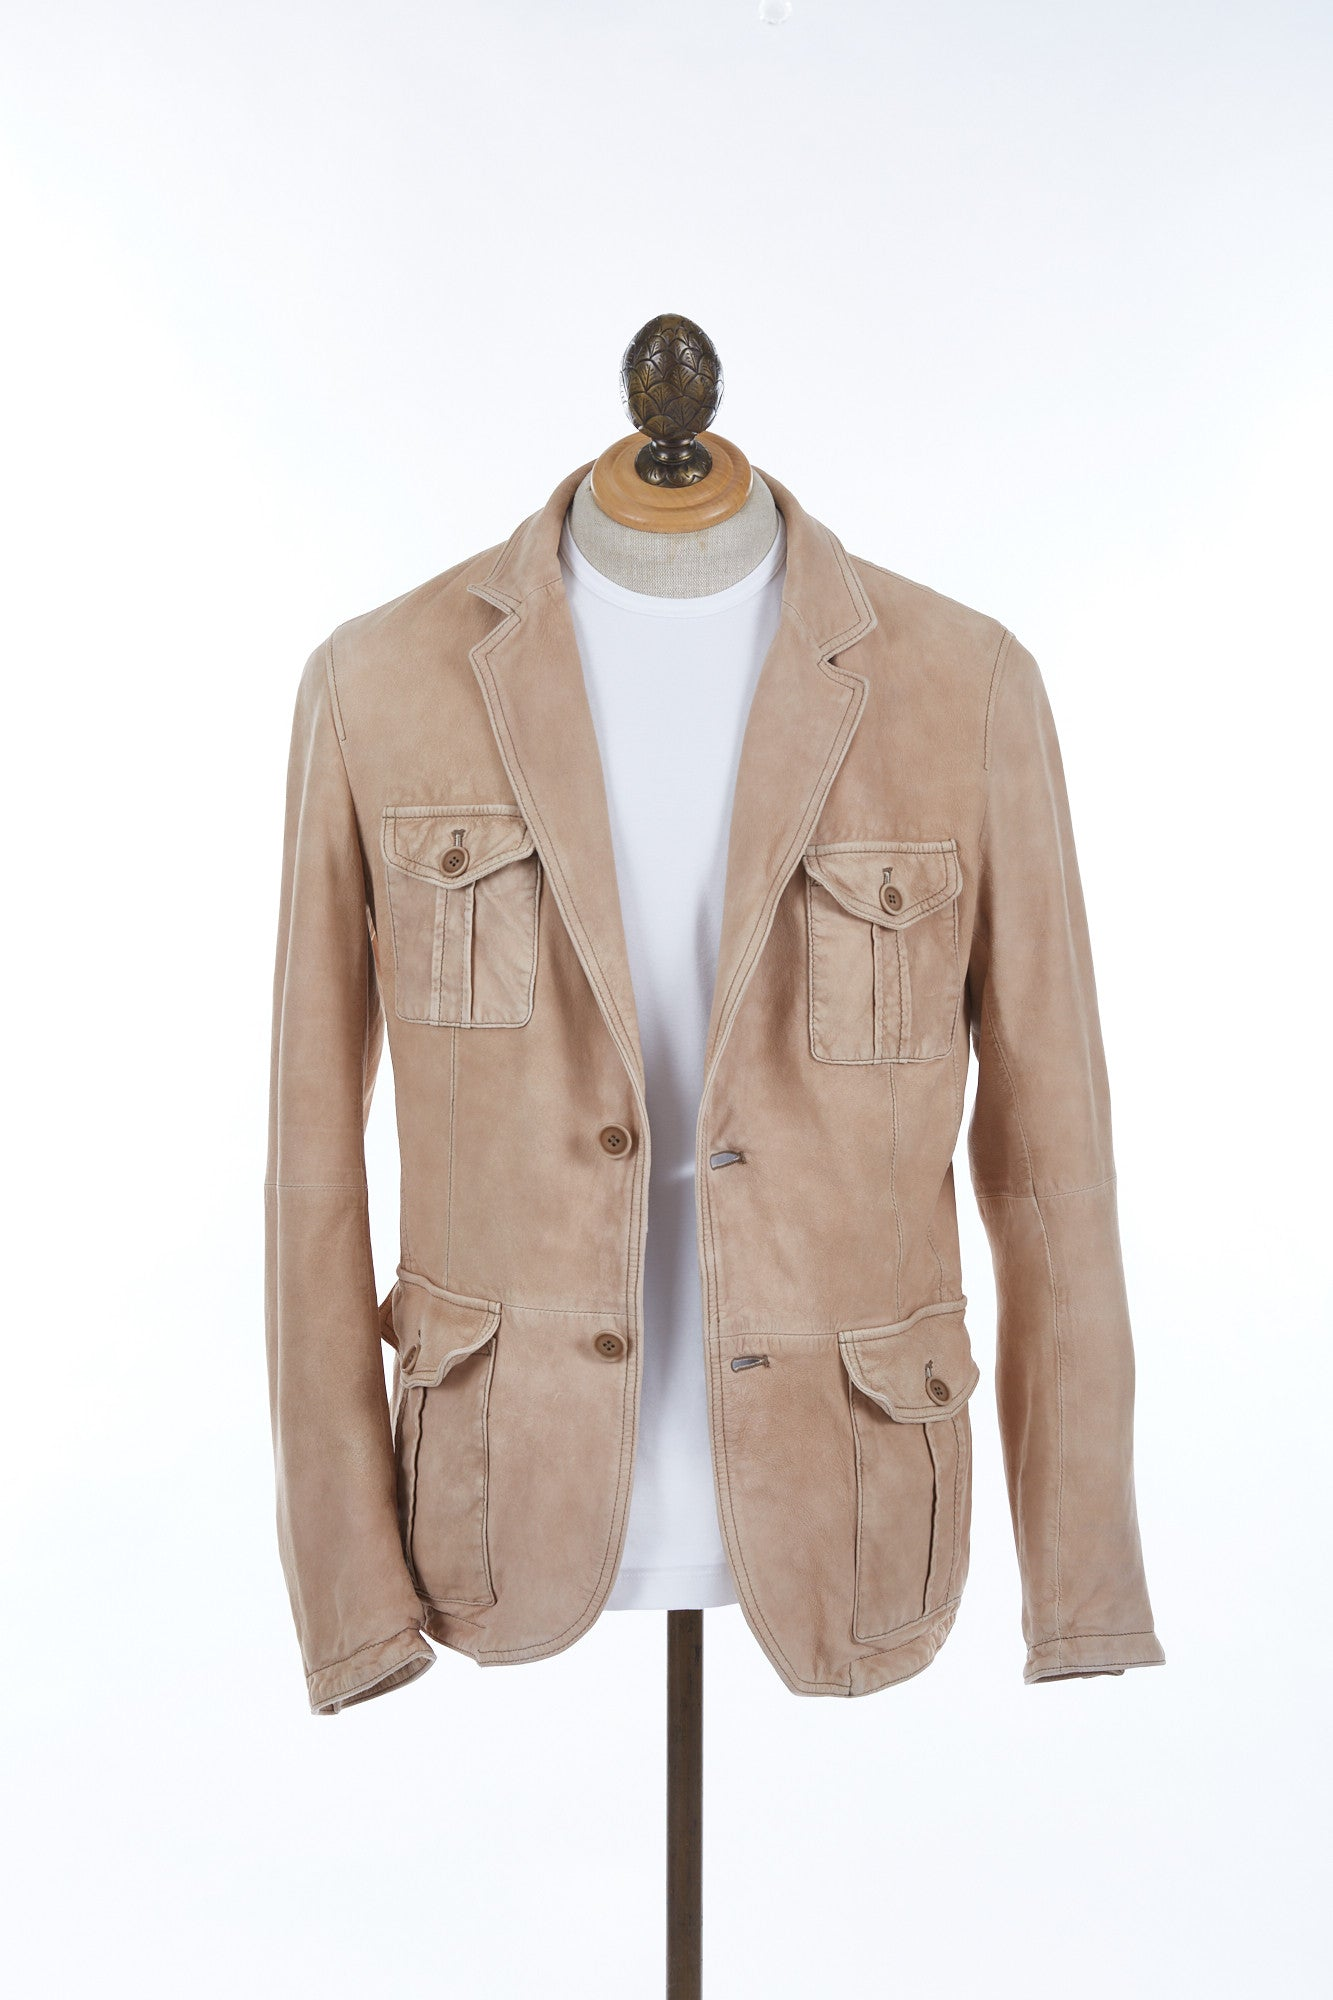 GIMO'S Suede Leather Jacket - Outerwear - Gimo's - LALONDE's